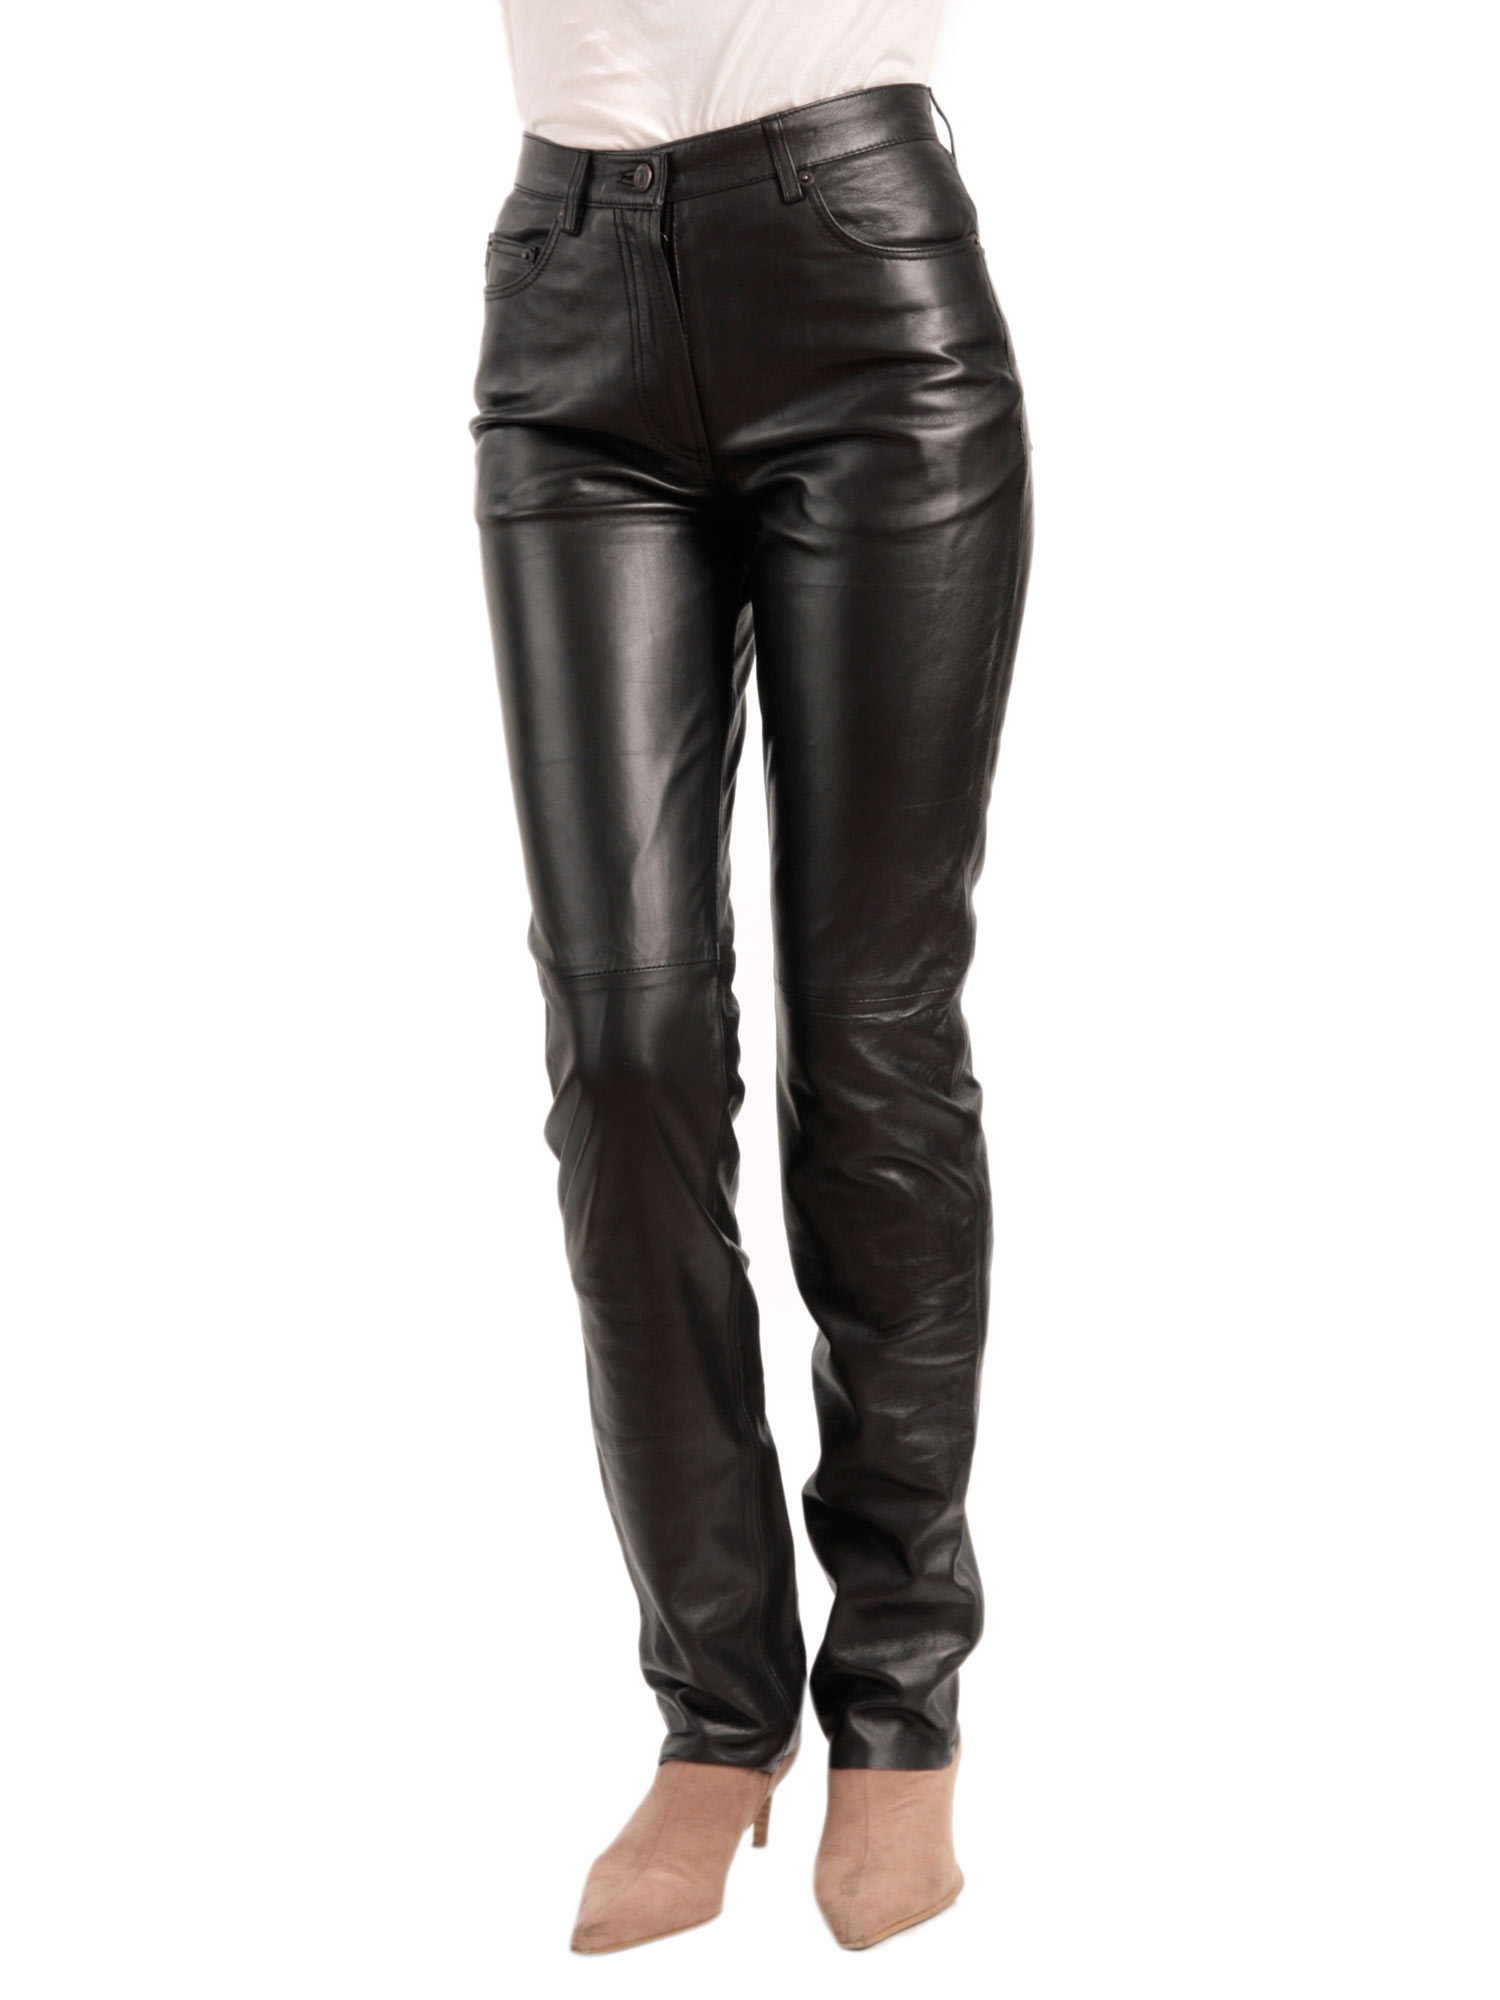 Model Leather_Pants_wwwFashionEndscom 7